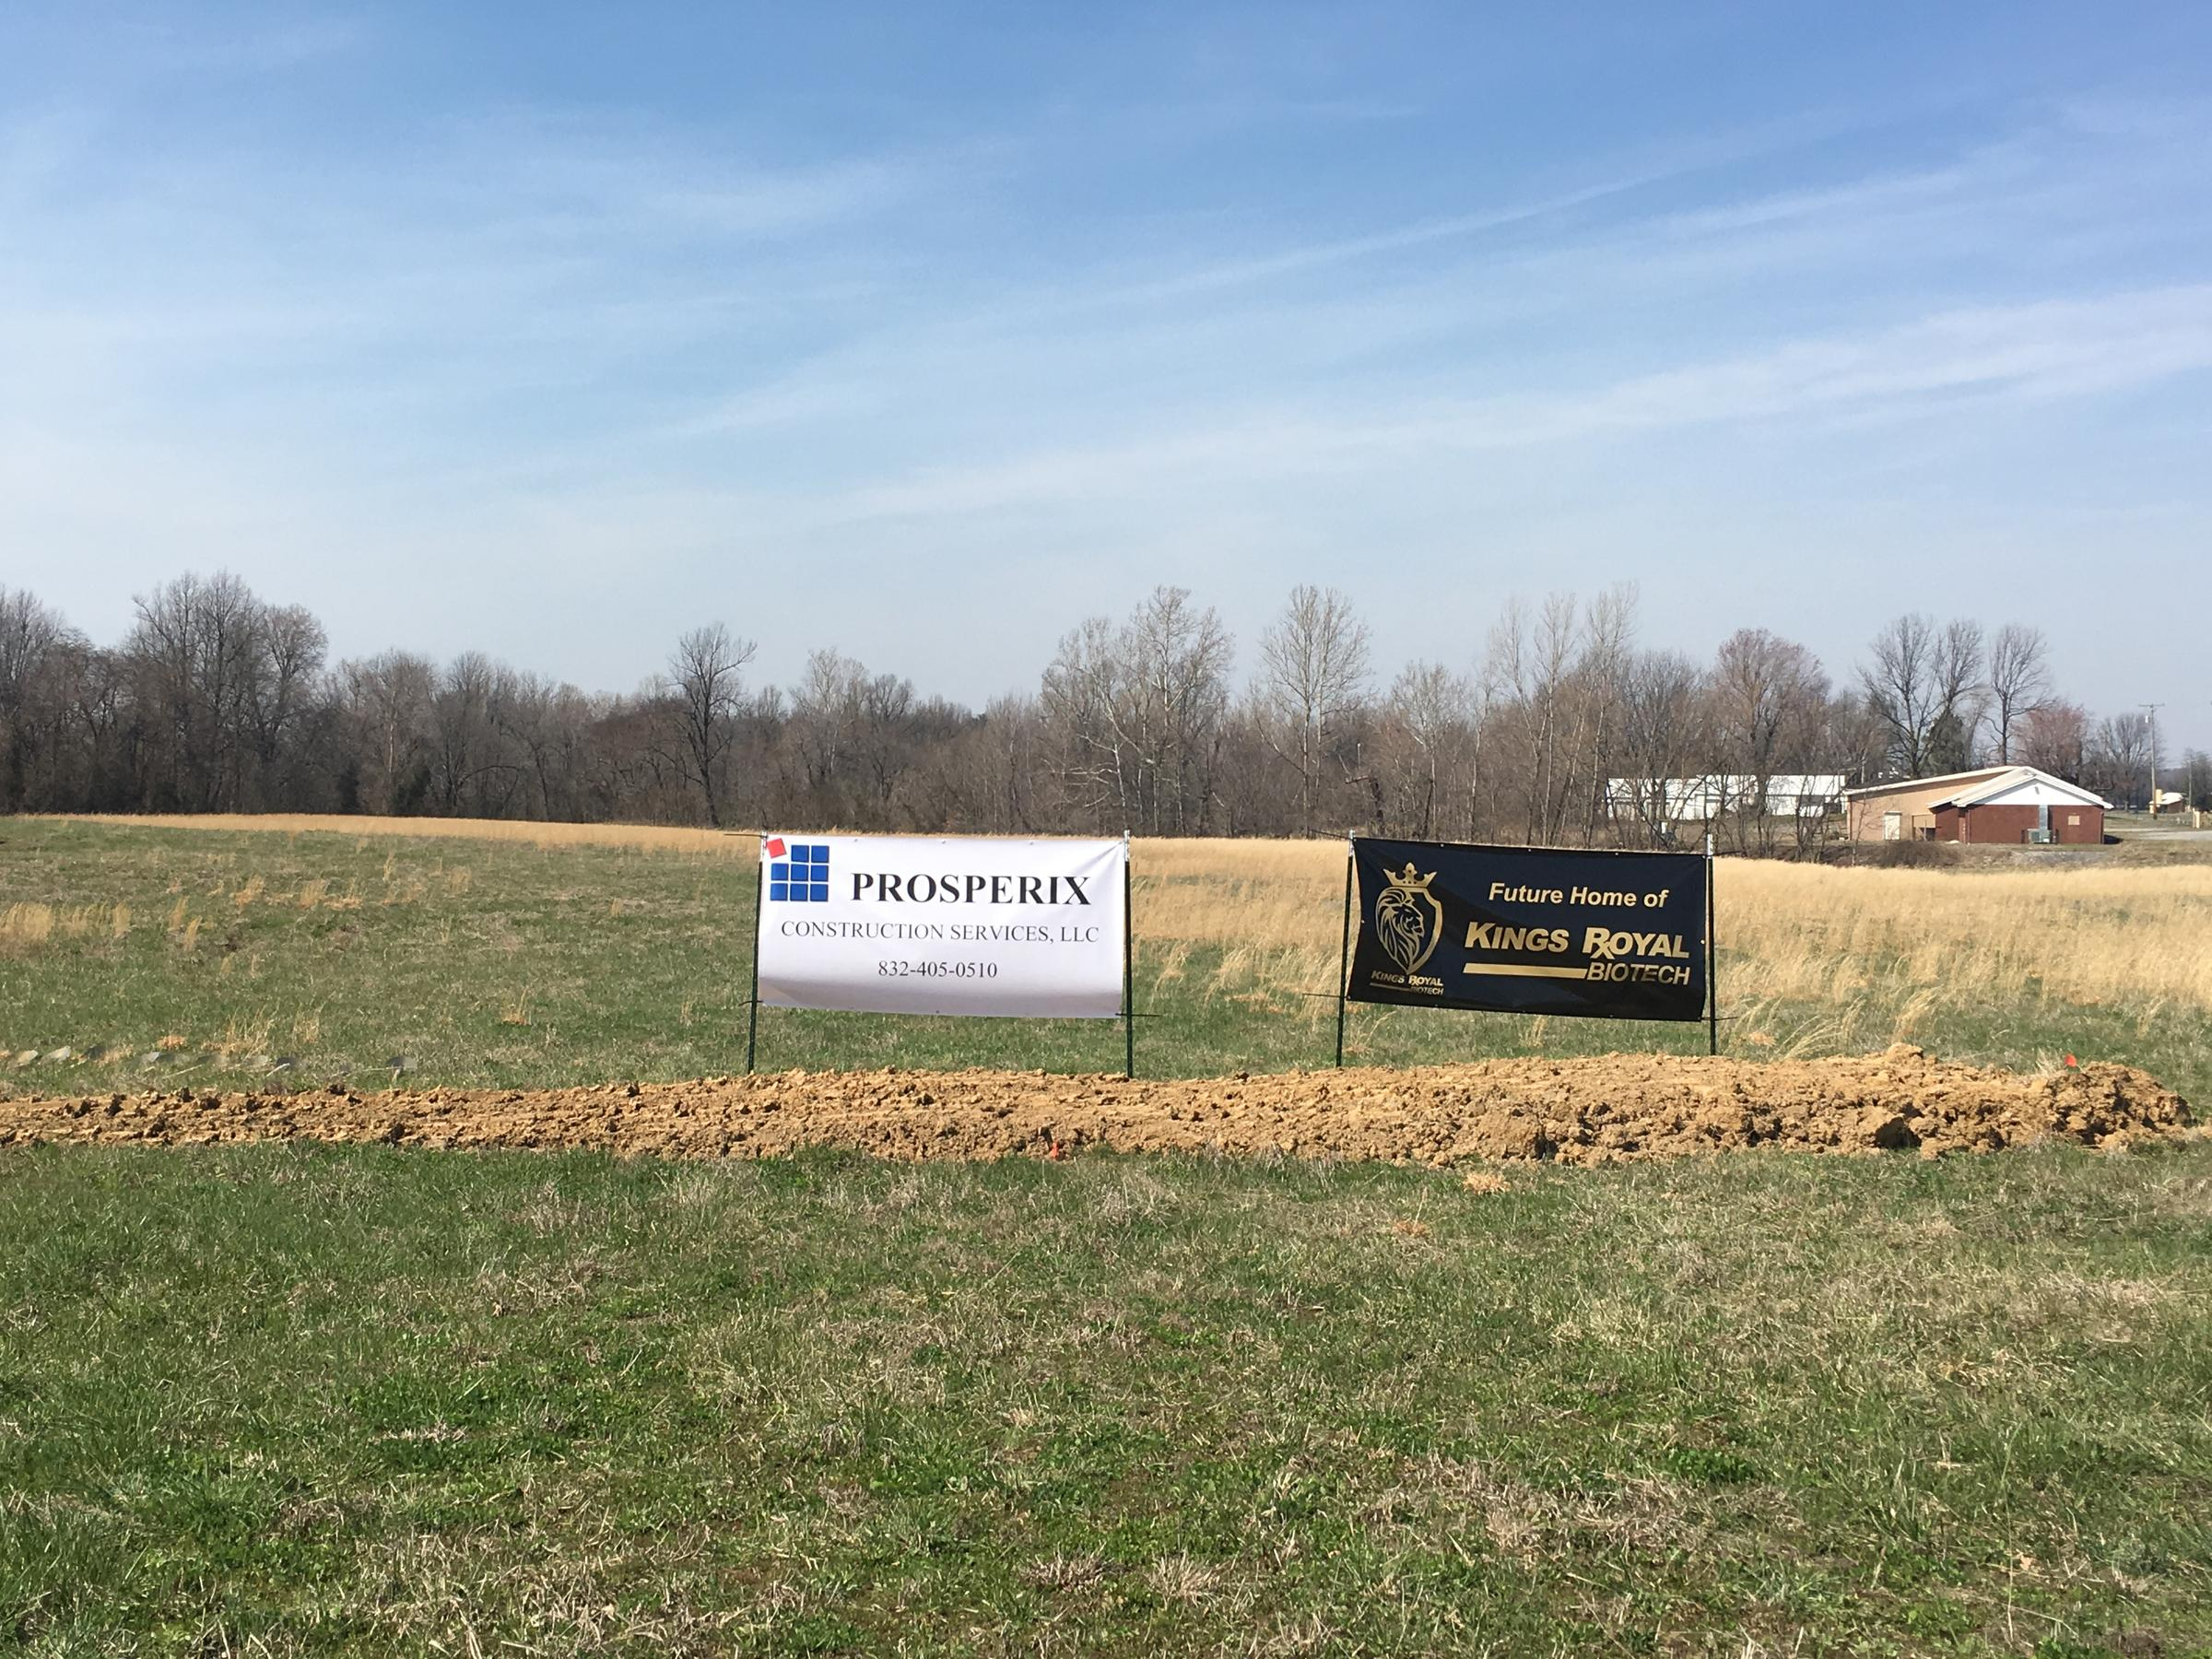 Hemp CBD Extraction Facility Breaks Ground in Carlisle County | WKMS